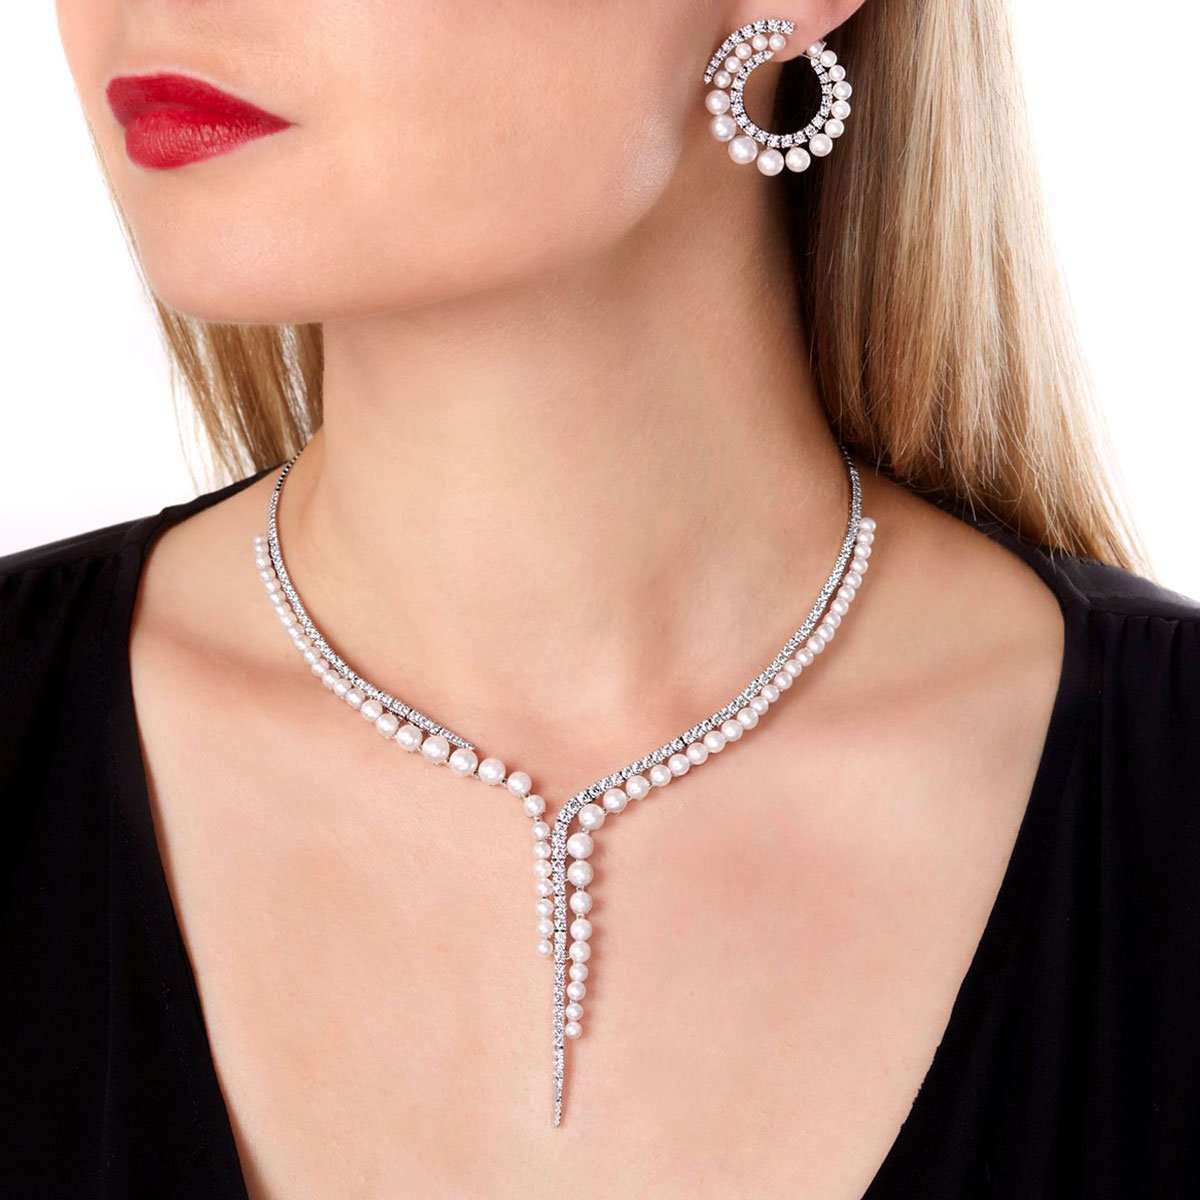 0001934 raindrop akoya pearl and diamond necklace in 18ct white gold